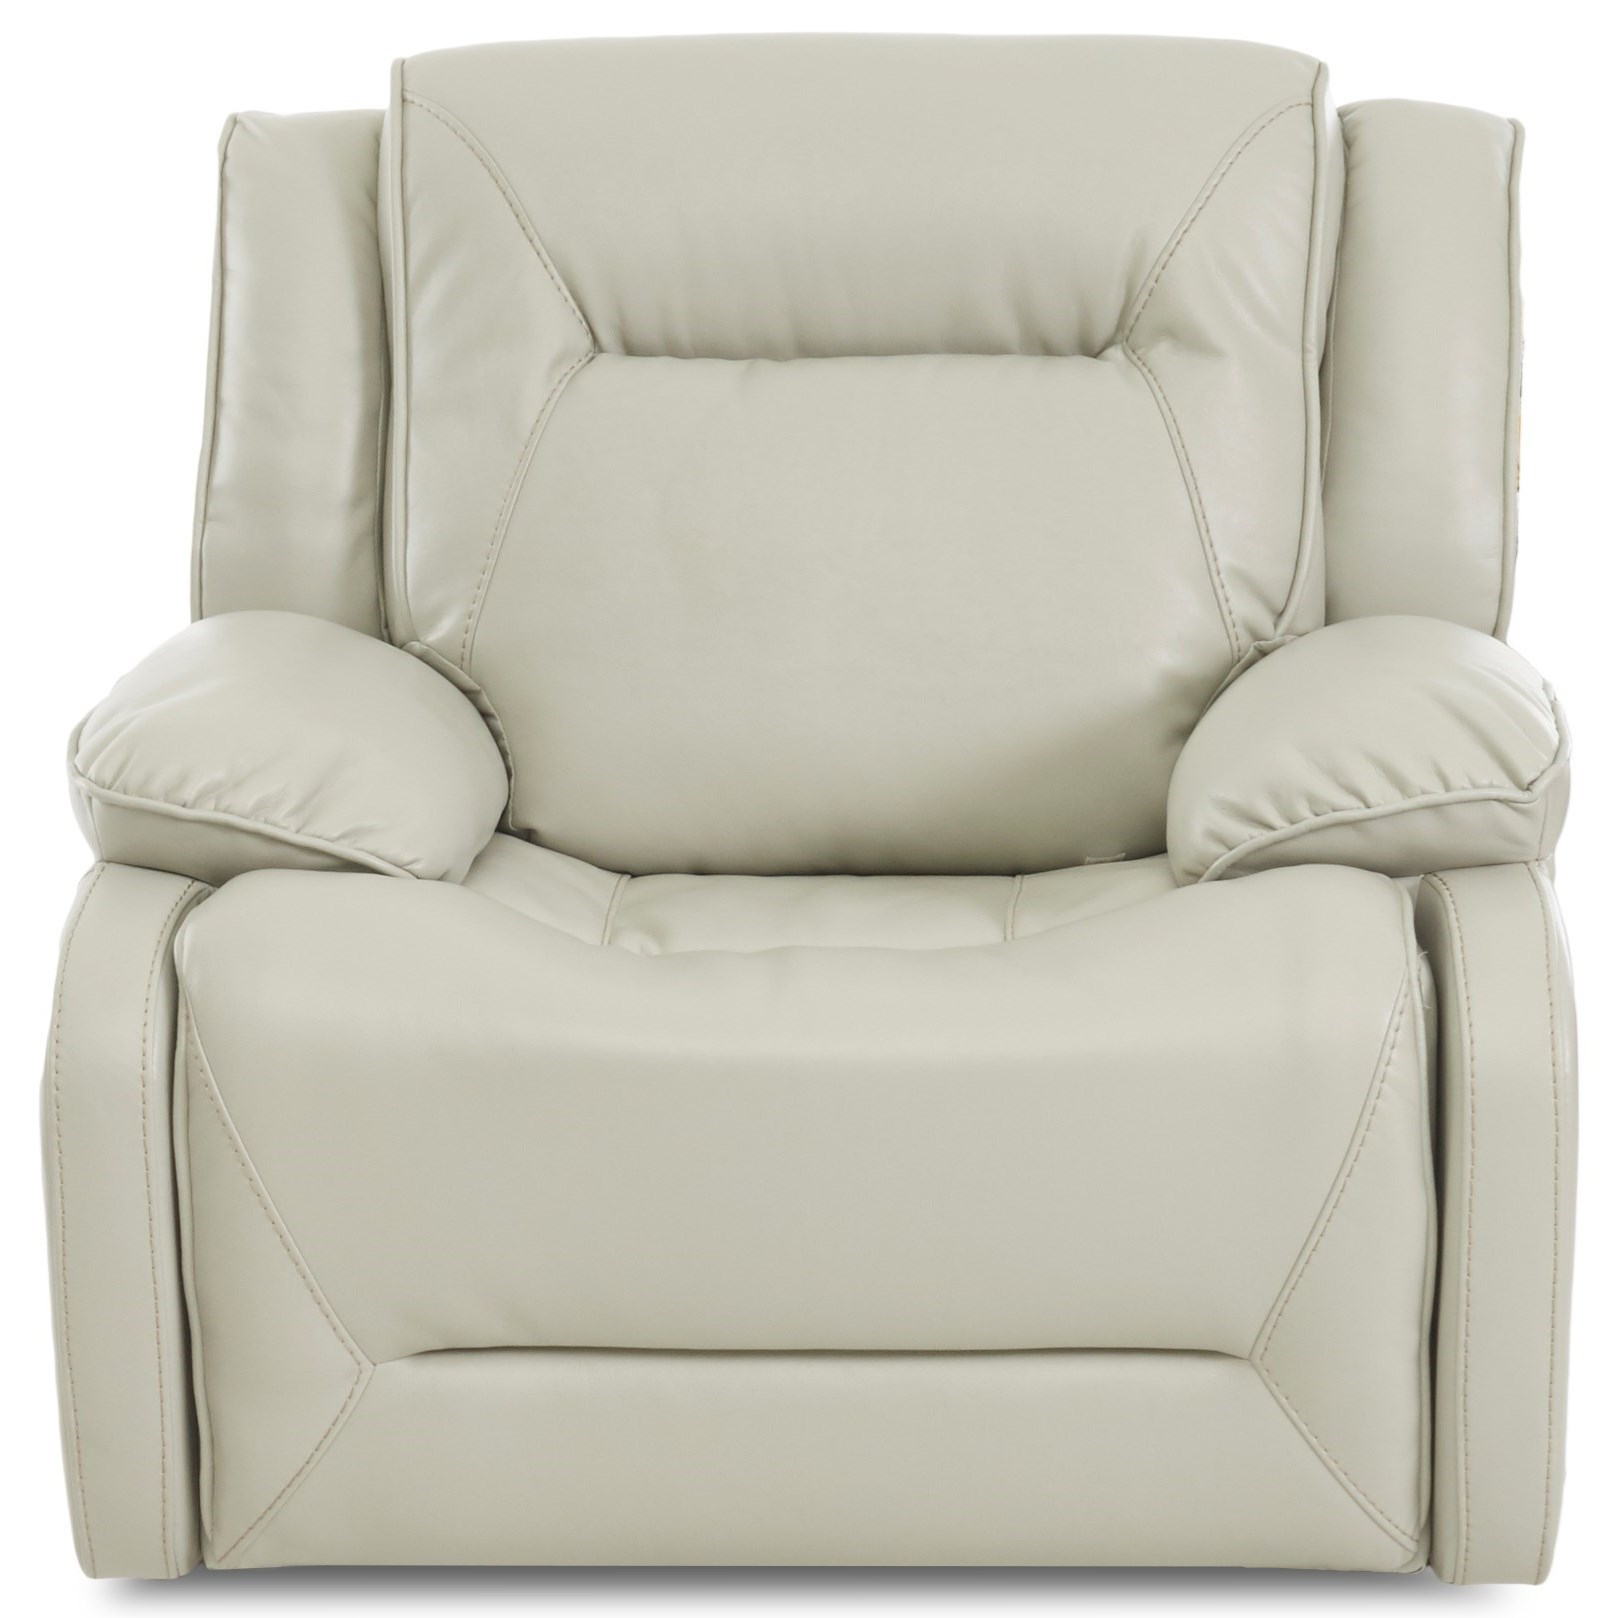 Dansby Power Recliner w/ Power Headrest by Klaussner International at Northeast Factory Direct